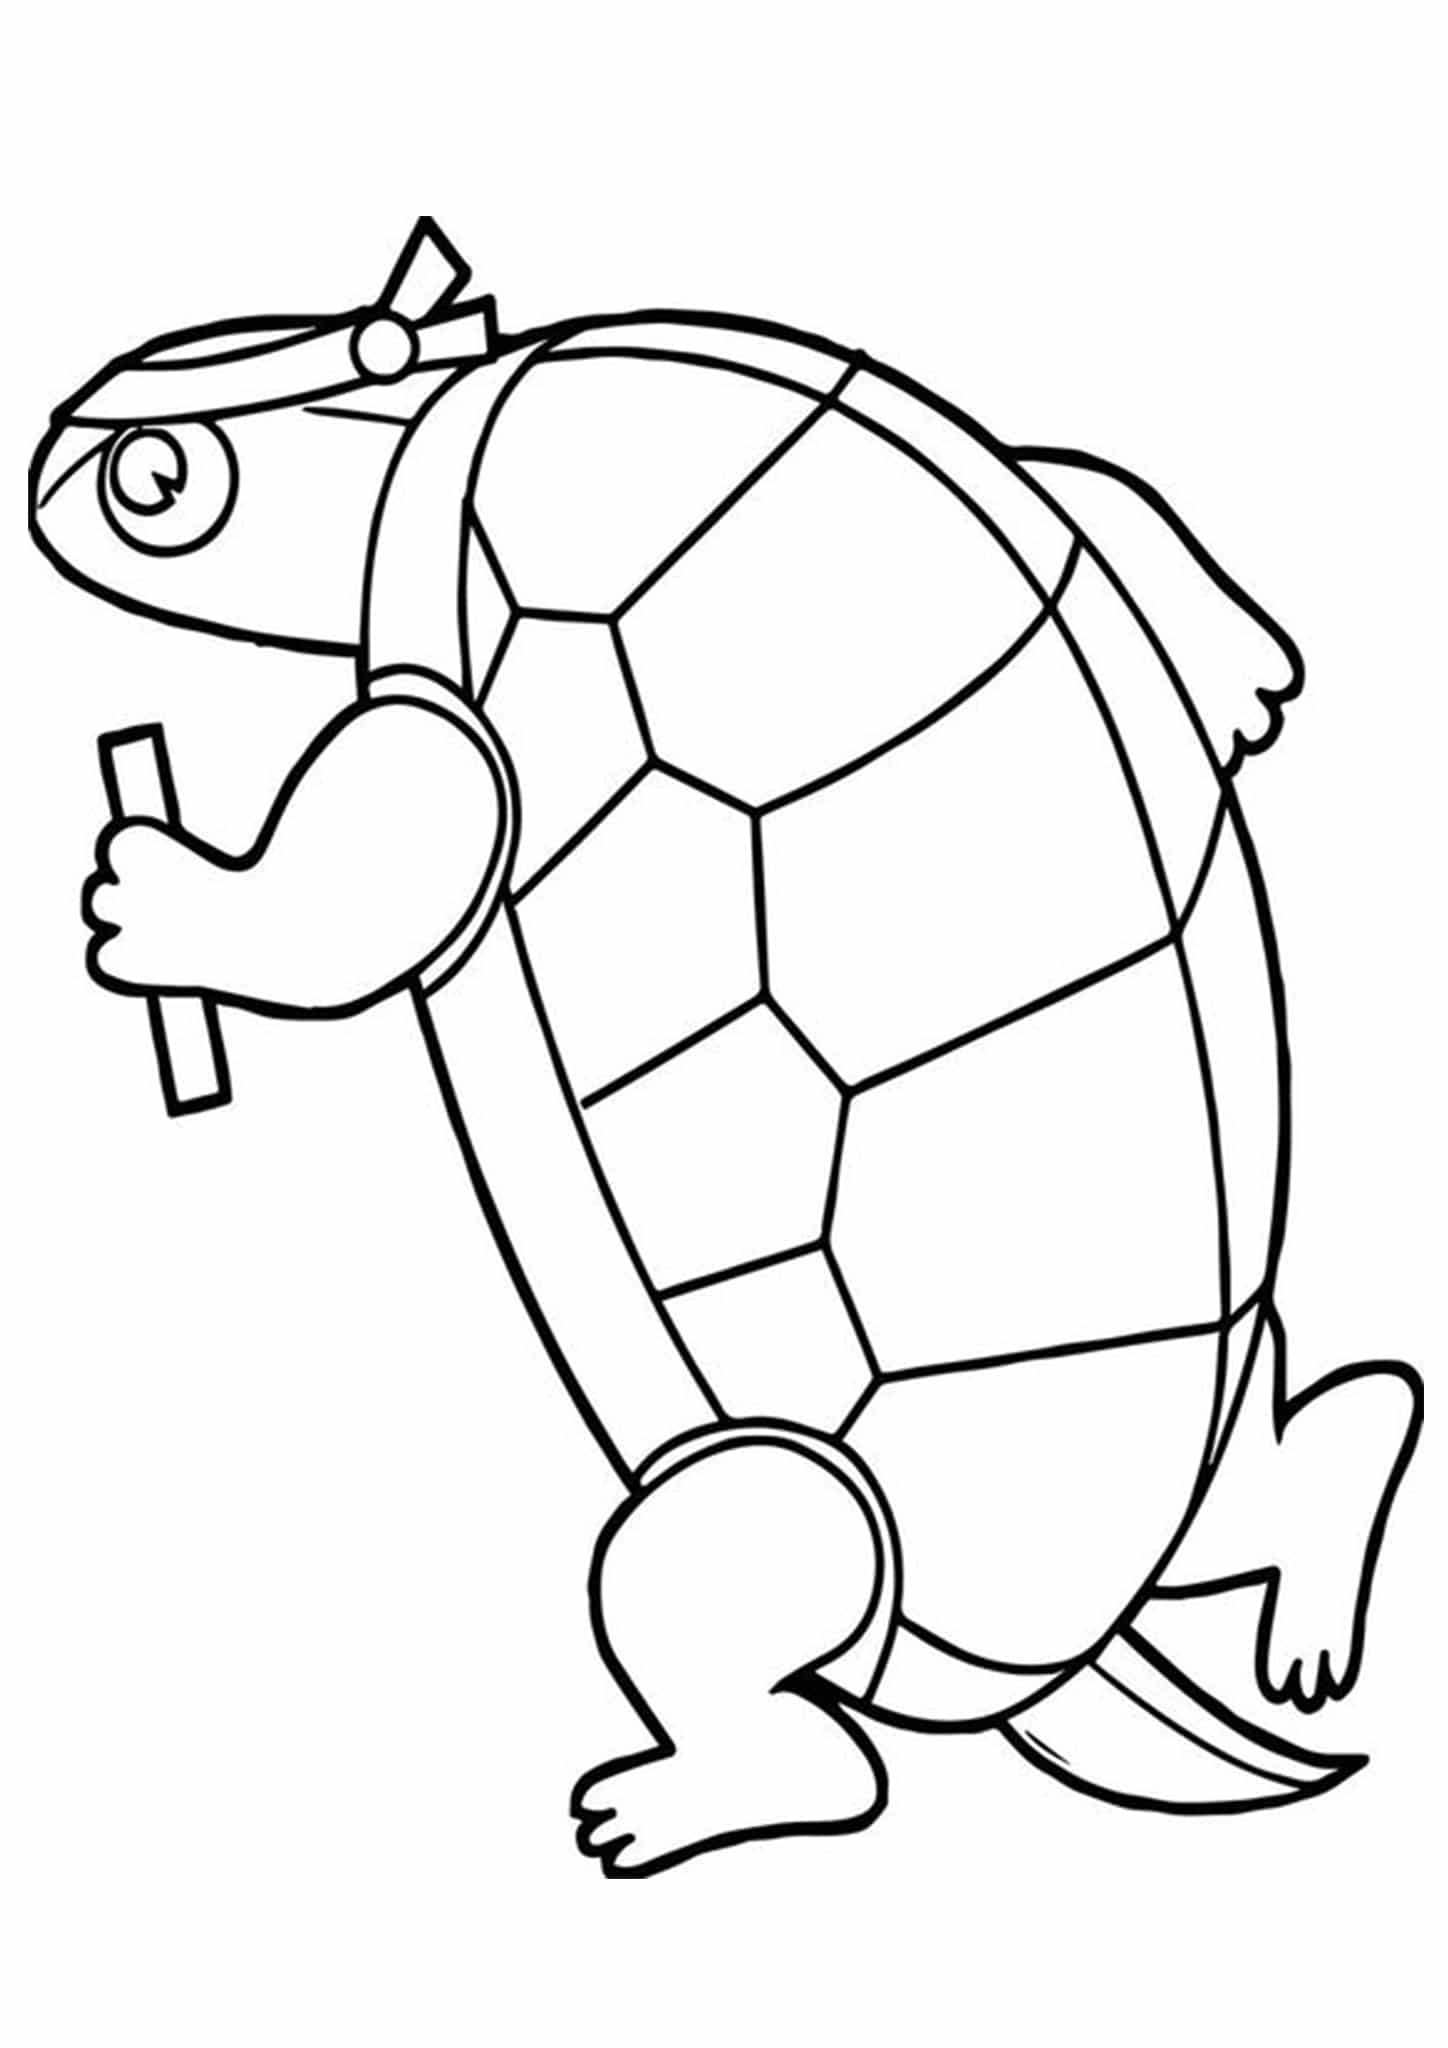 coloring pages turtle turtle coloring pages for kids and adults 101 coloring turtle coloring pages